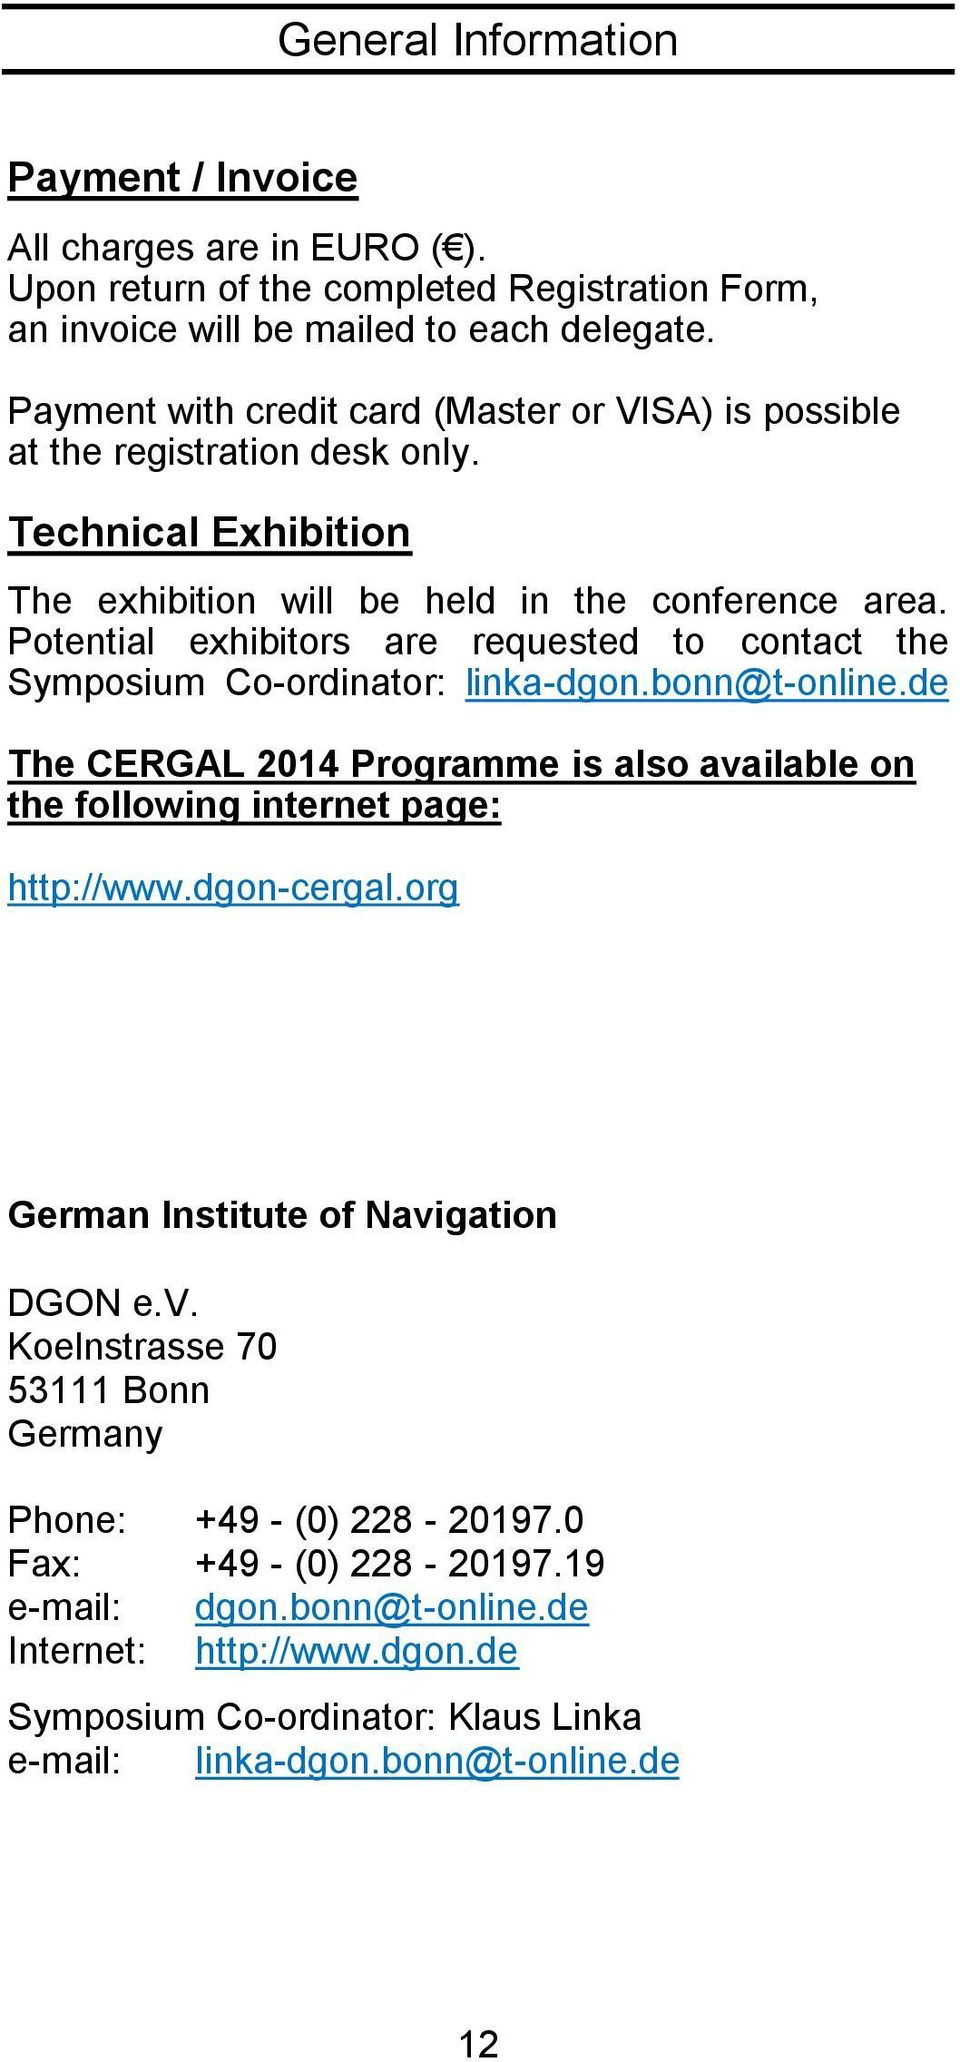 Potential exhibitors are requested to contact the Symposium Co-ordinator: linka-dgon.bonn@t-online.de The CERGAL 2014 Programme is also available on the following internet page: http://www.